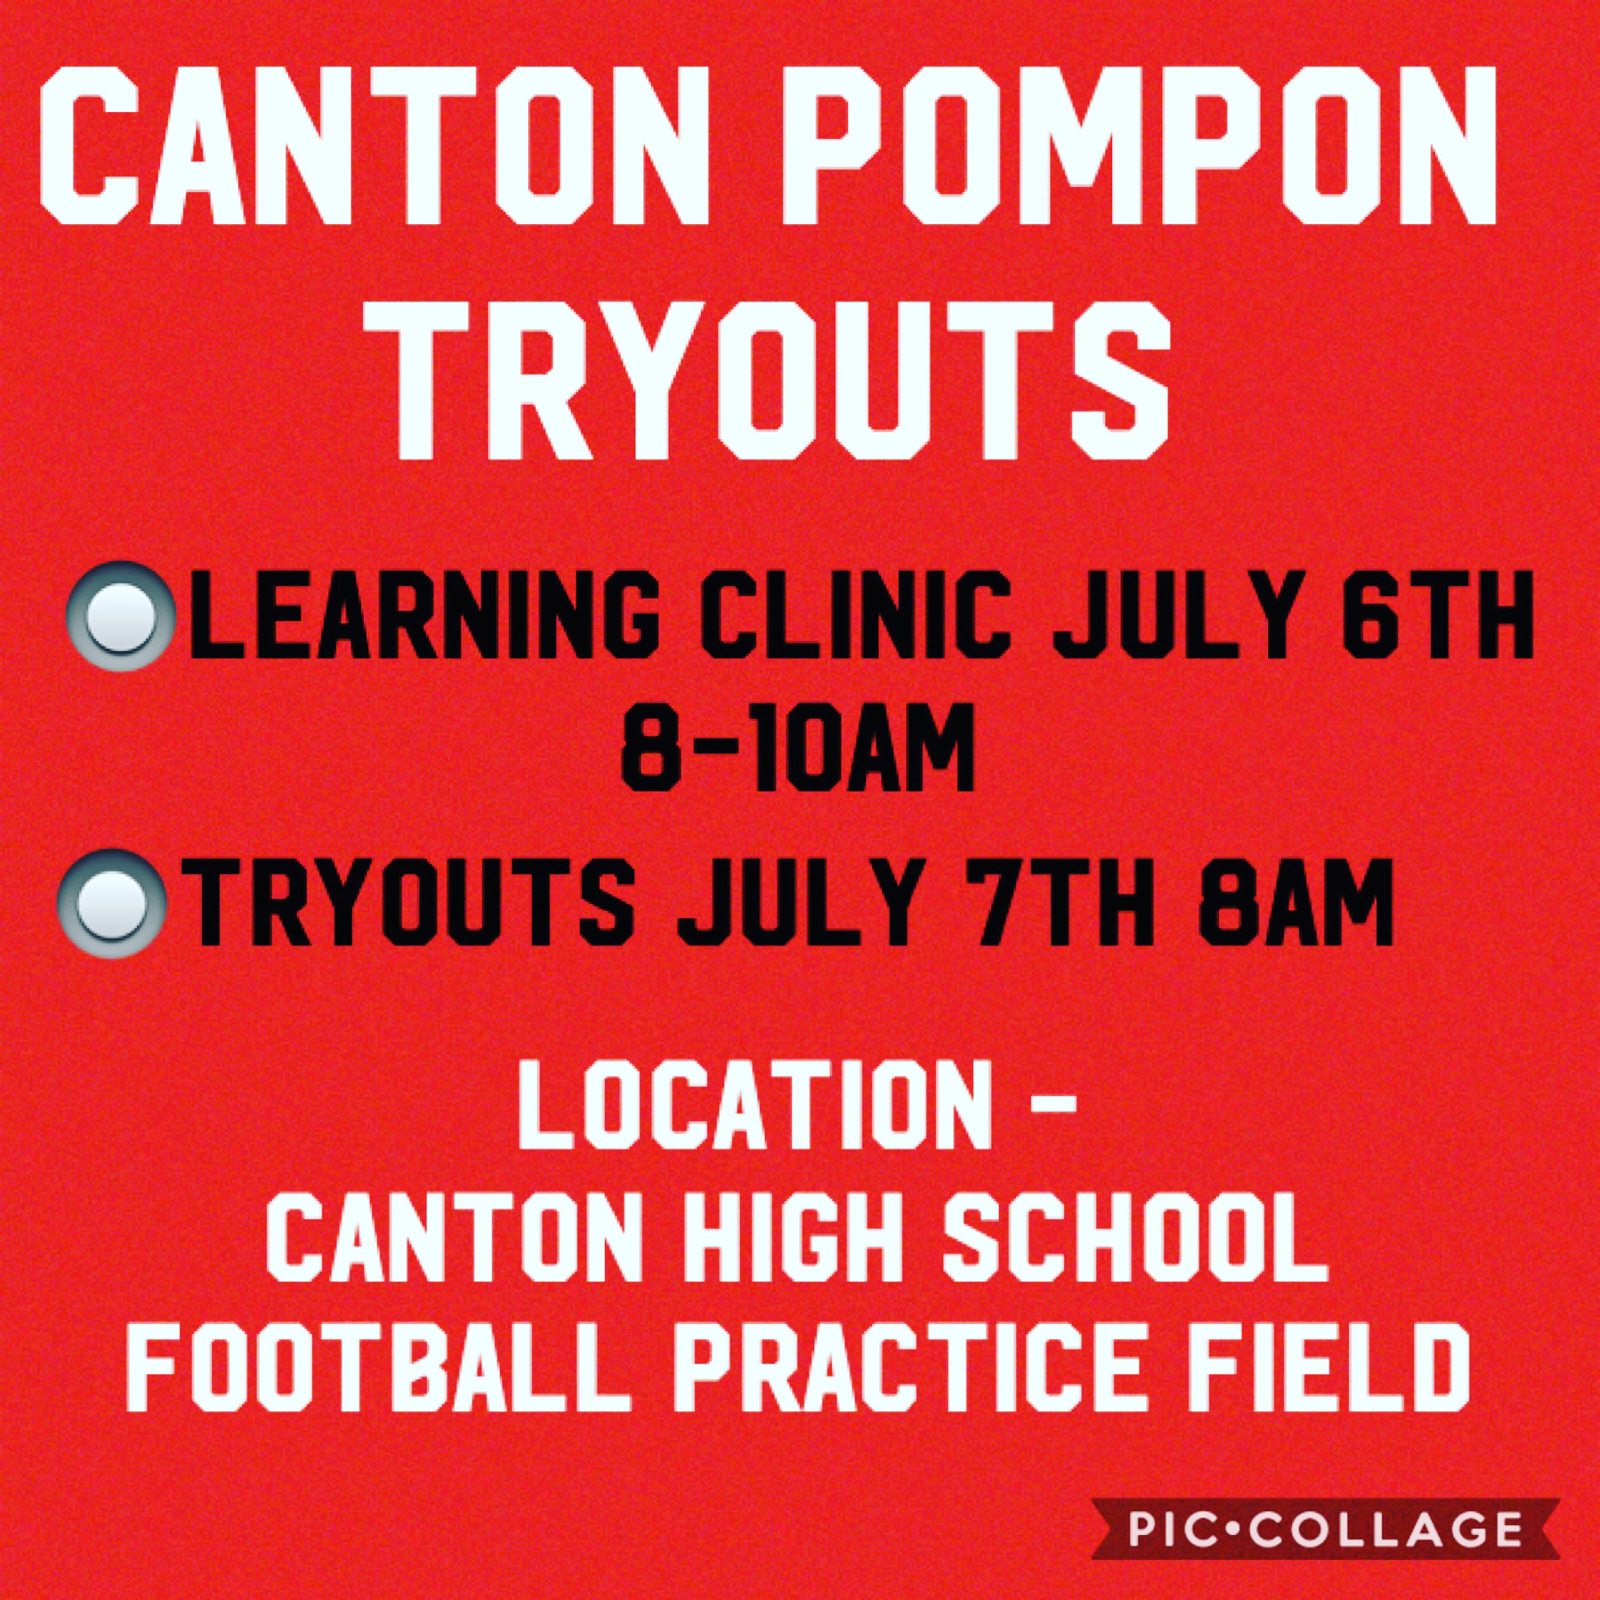 Come join your 2020 State Championship Pompon Teams